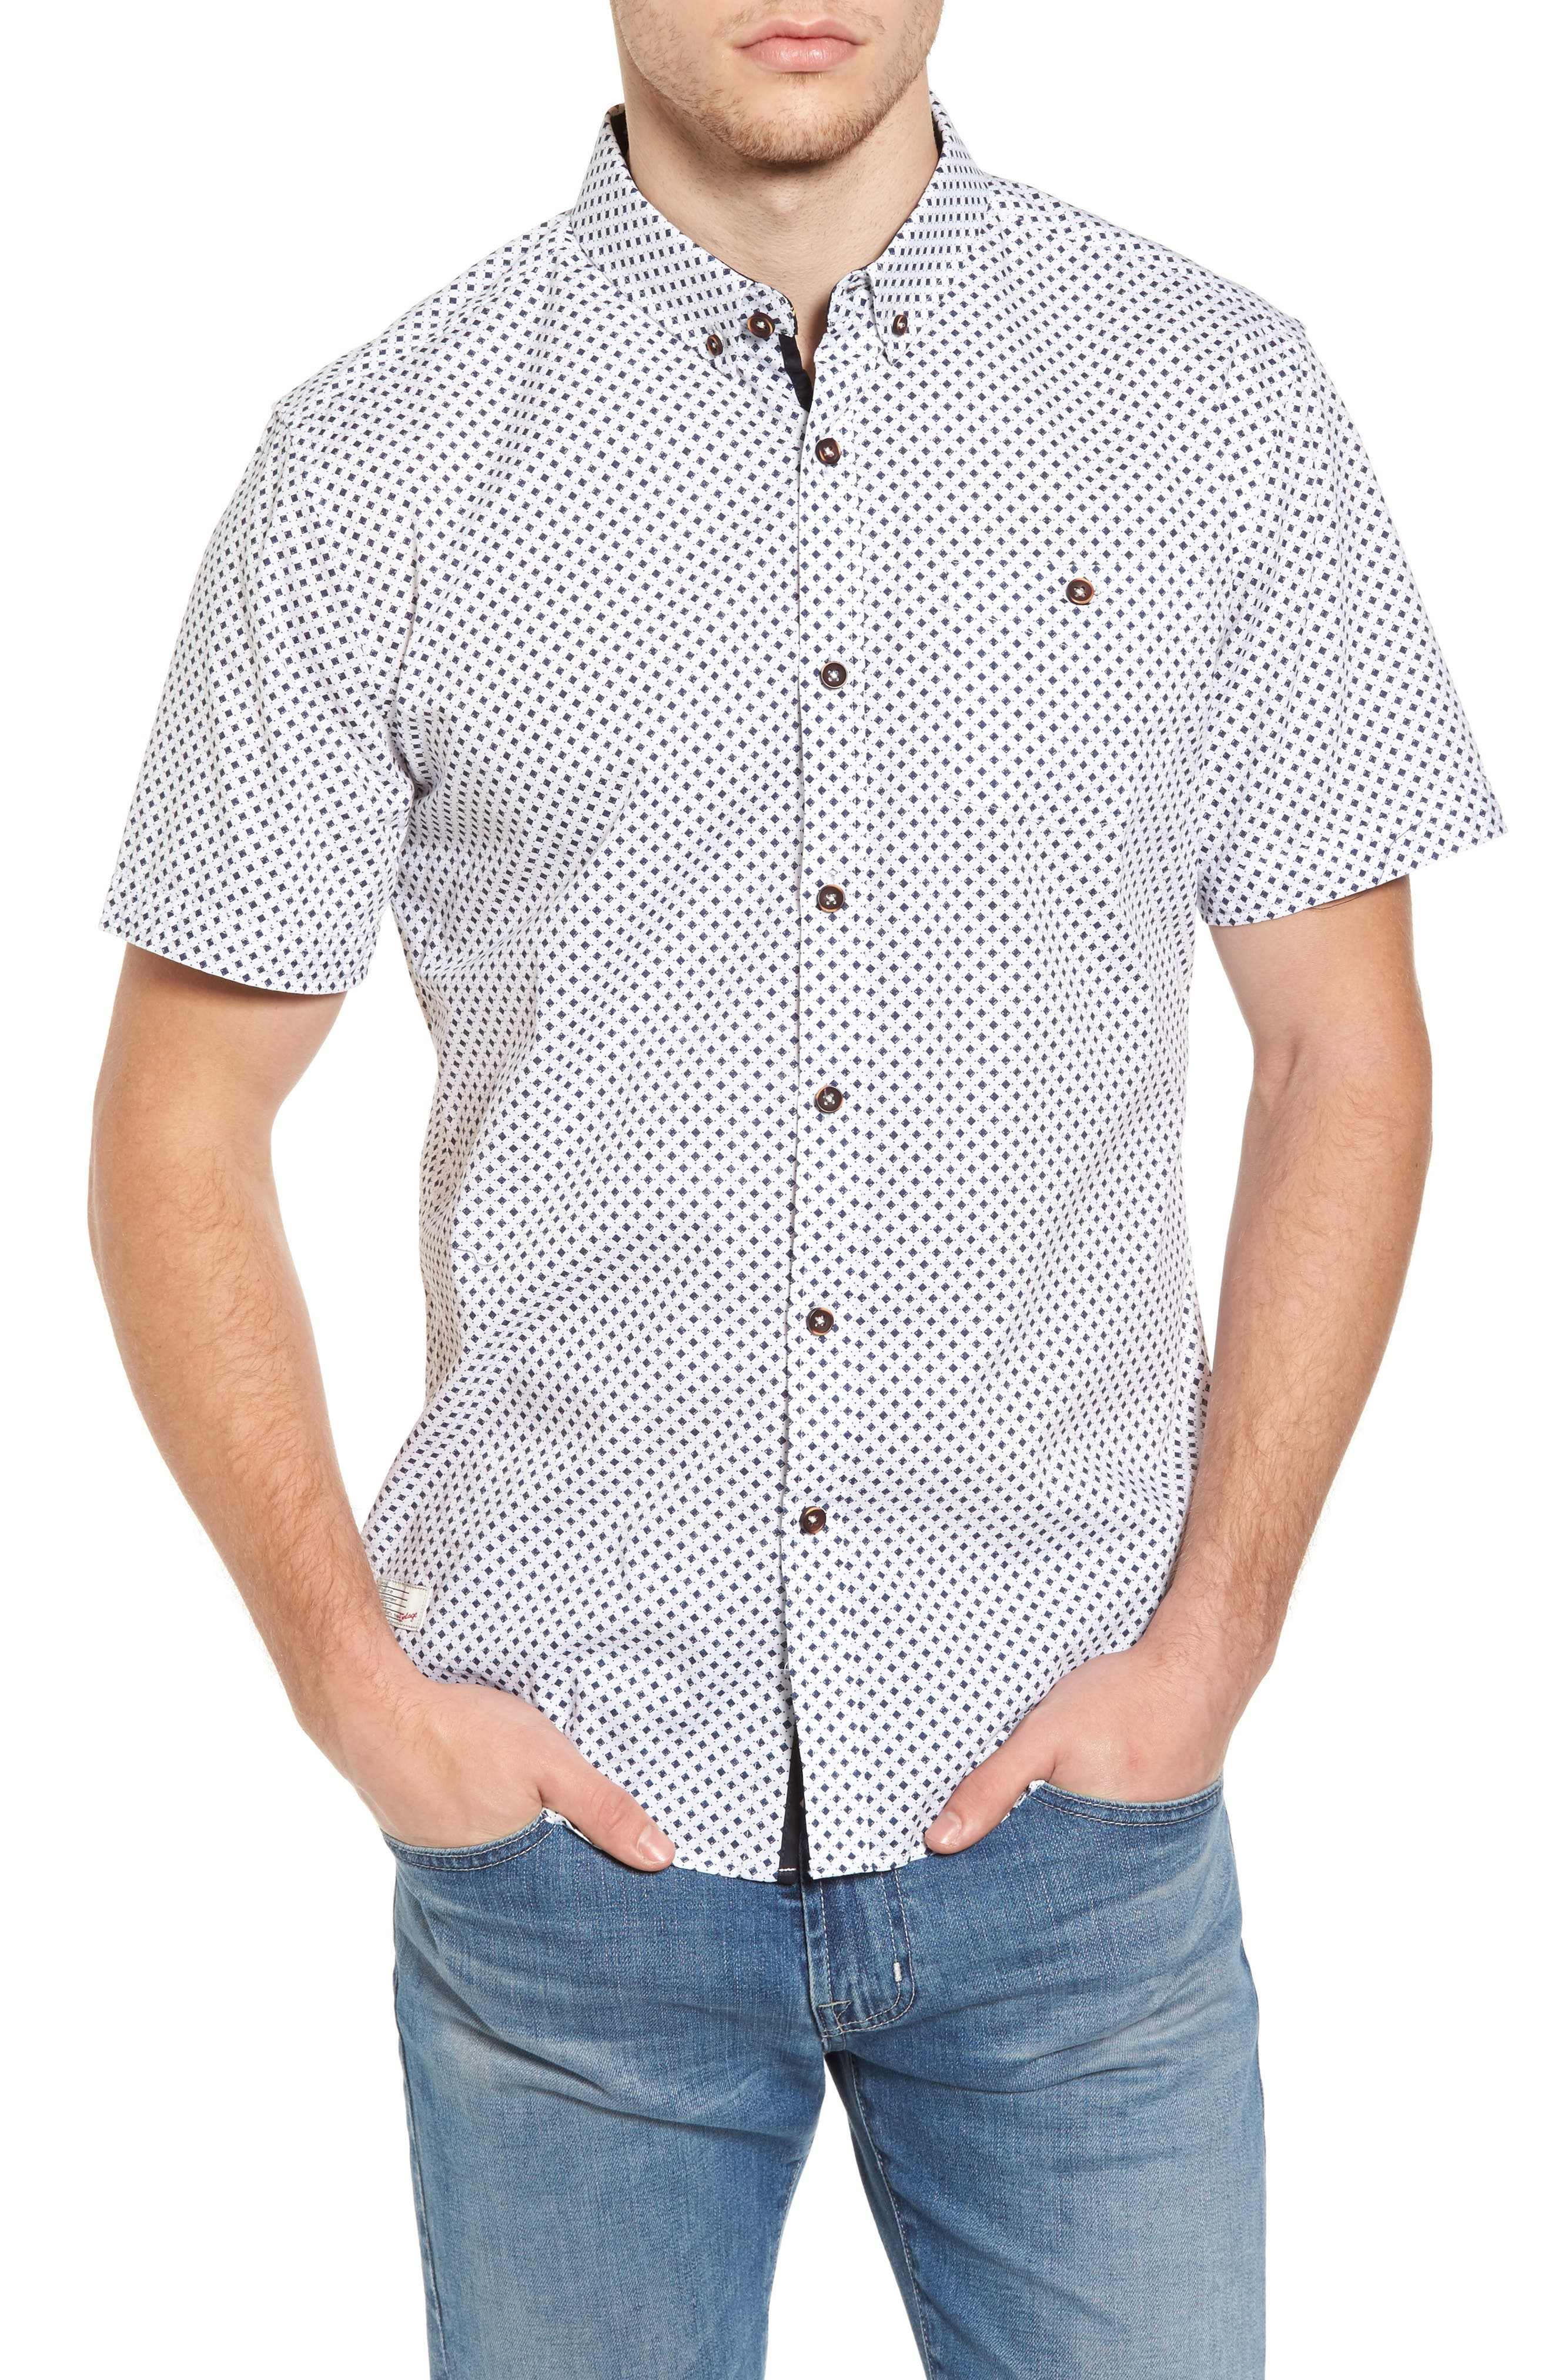 7 Diamonds Mind Reader Woven Shirt